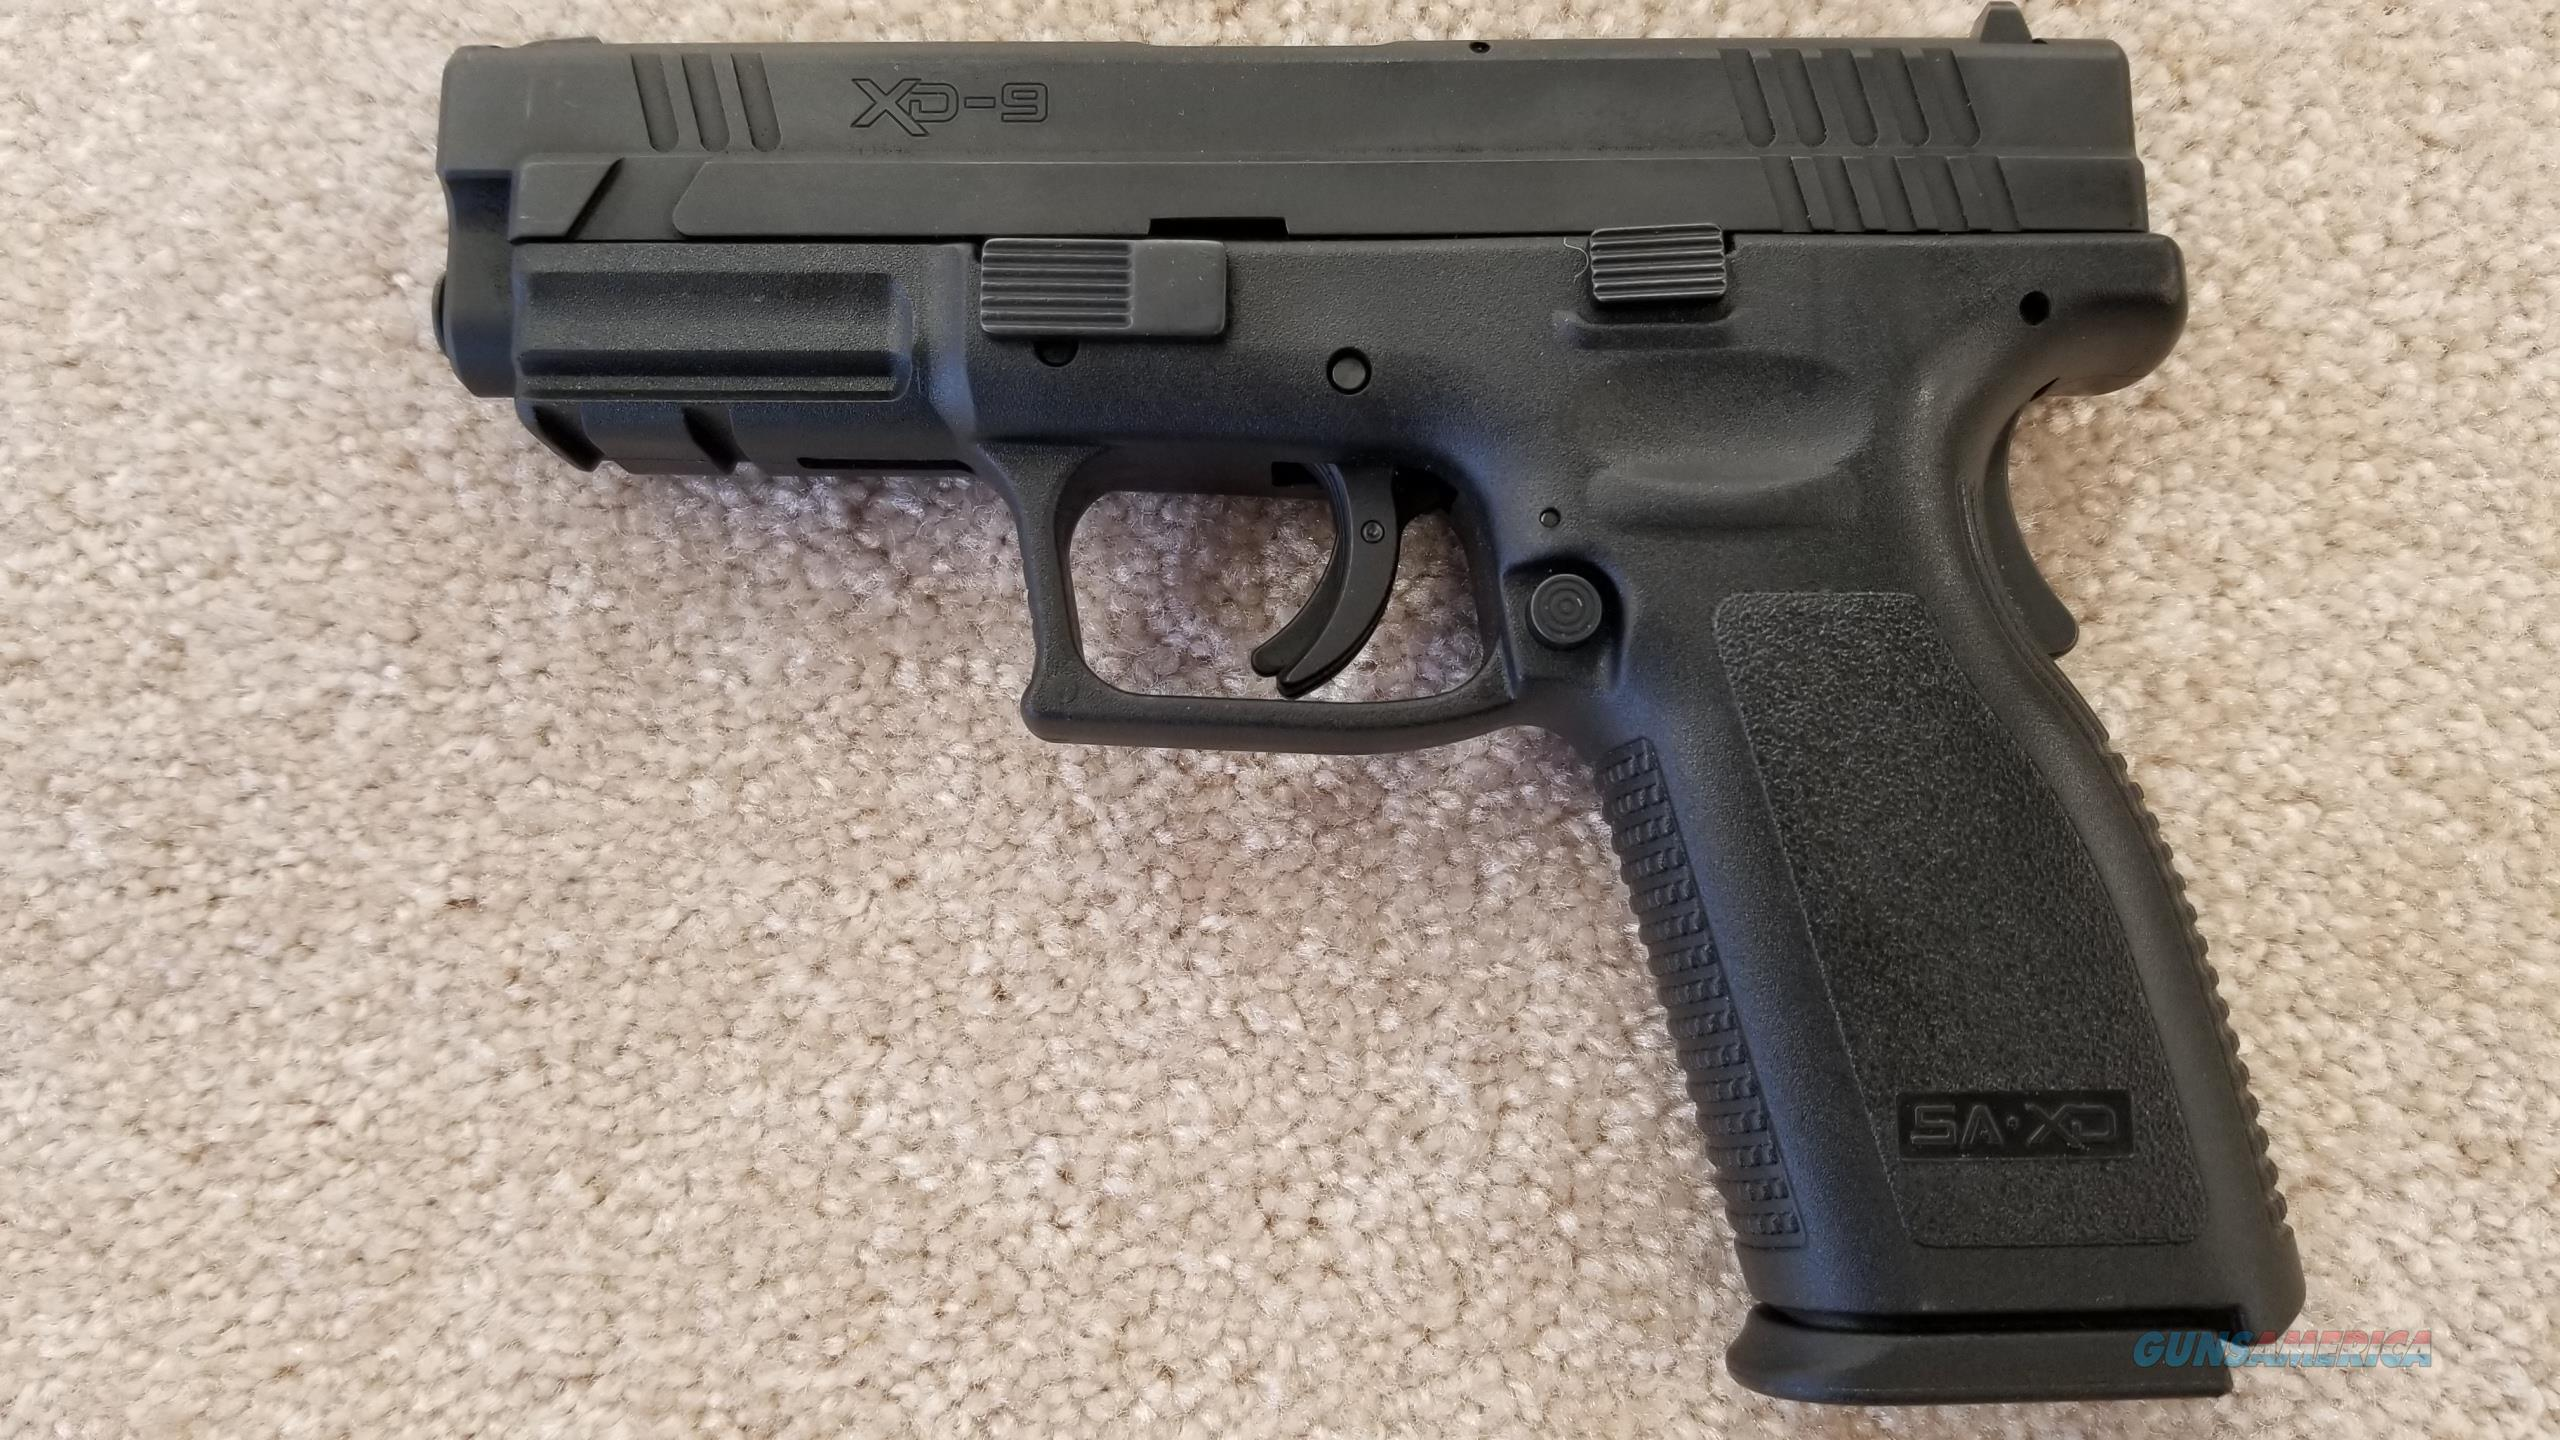 Pre-Owned Springfield Armory XD-9 9mm w/ (5) 15 Round Mags  Guns > Pistols > Springfield Armory Pistols > 1911 Type